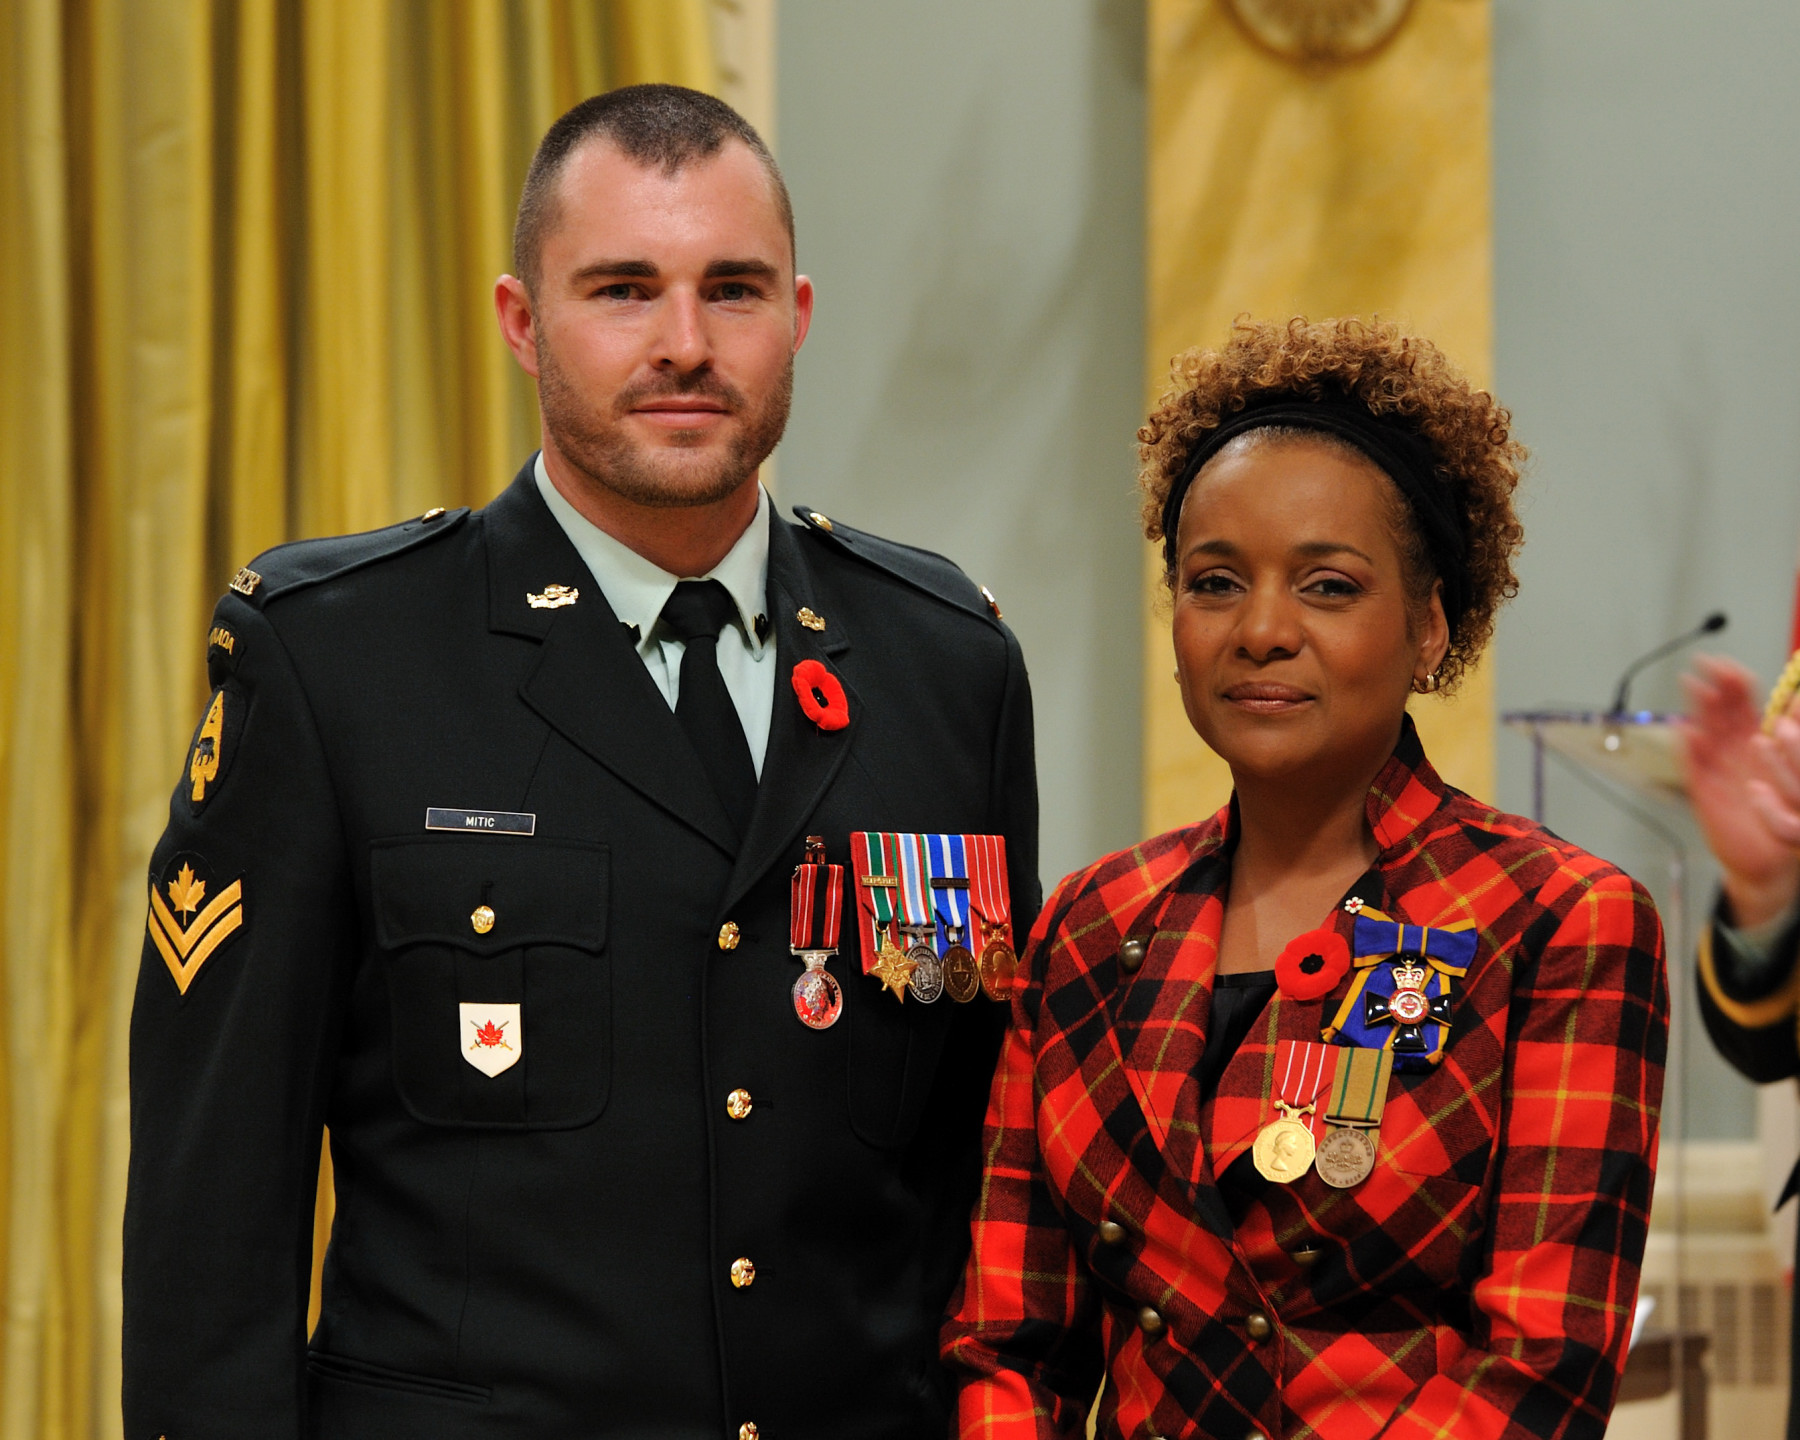 Her Excellency the Right Honourable Michaëlle Jean, Commander-in-Chief of Canada, presented the Sacrifice Medal to Master Corporal Jody Allan Mitic, C.D.